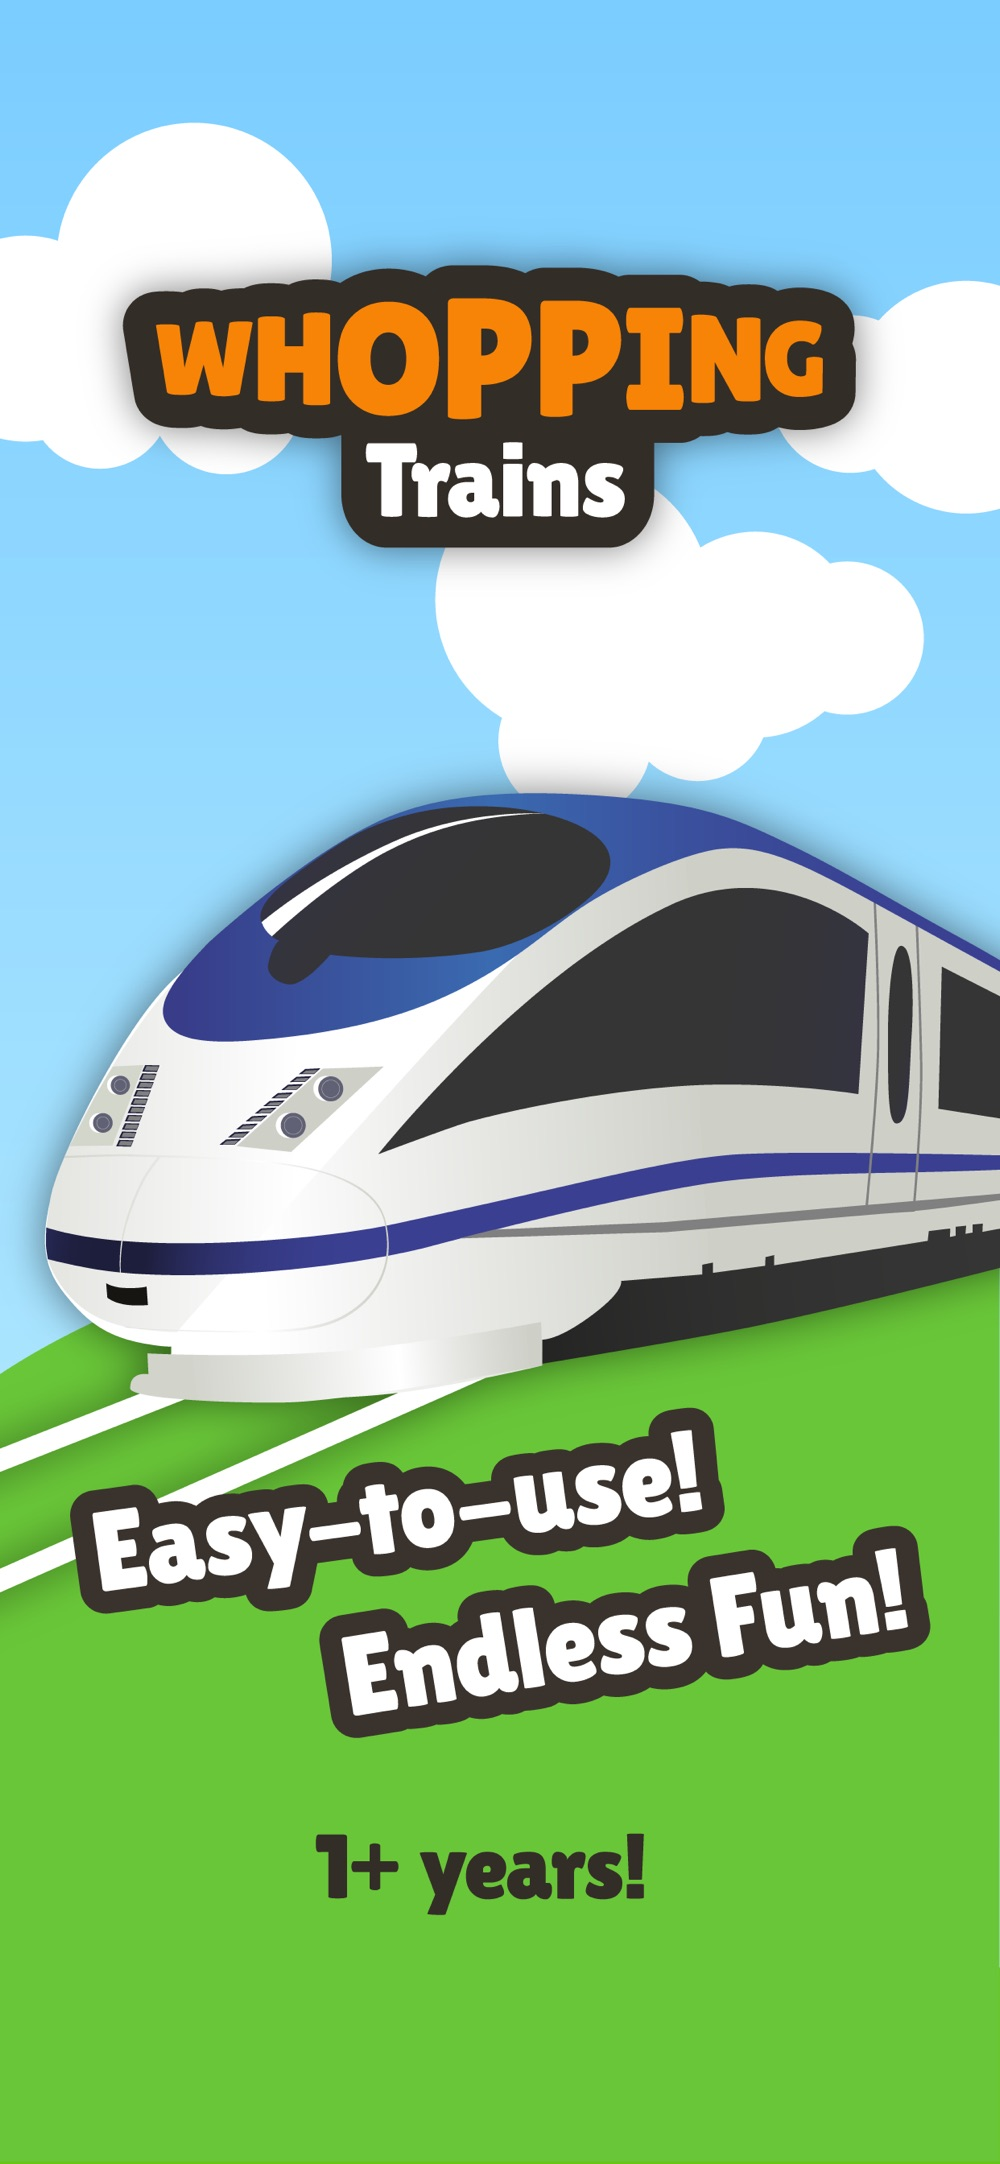 Whopping Trains Cheat Codes